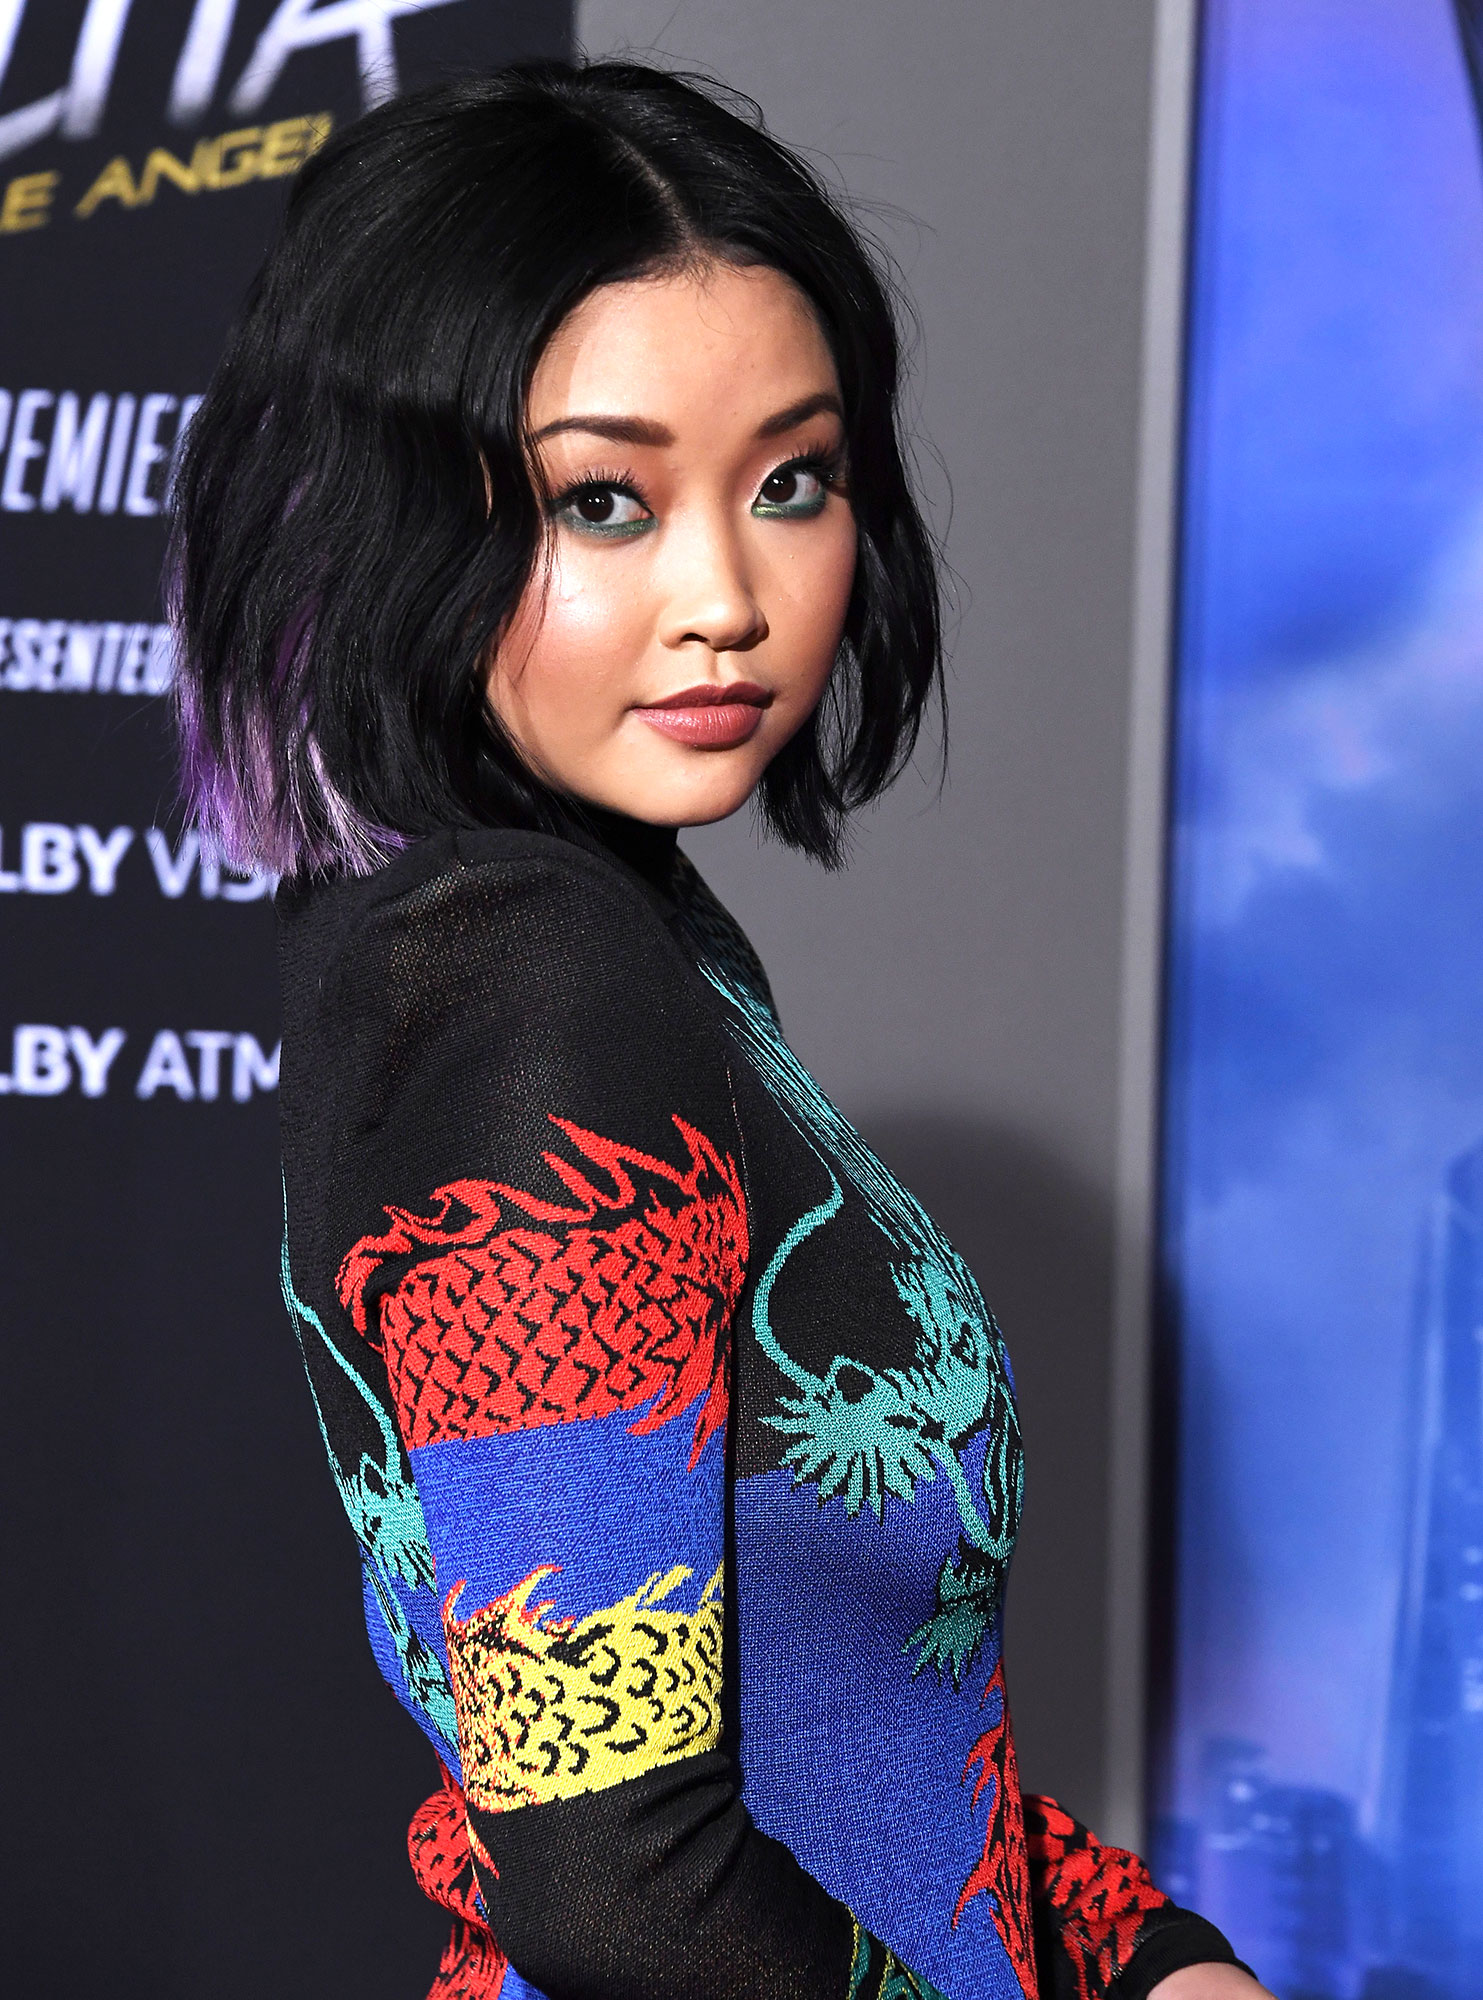 """Lana Condor - Lana Condor arrives at the Premiere Of 20th Century Fox's """"Alita: Battle Angel"""" at Westwood Regency Theater on February 05, 2019 in Los Angeles, California."""